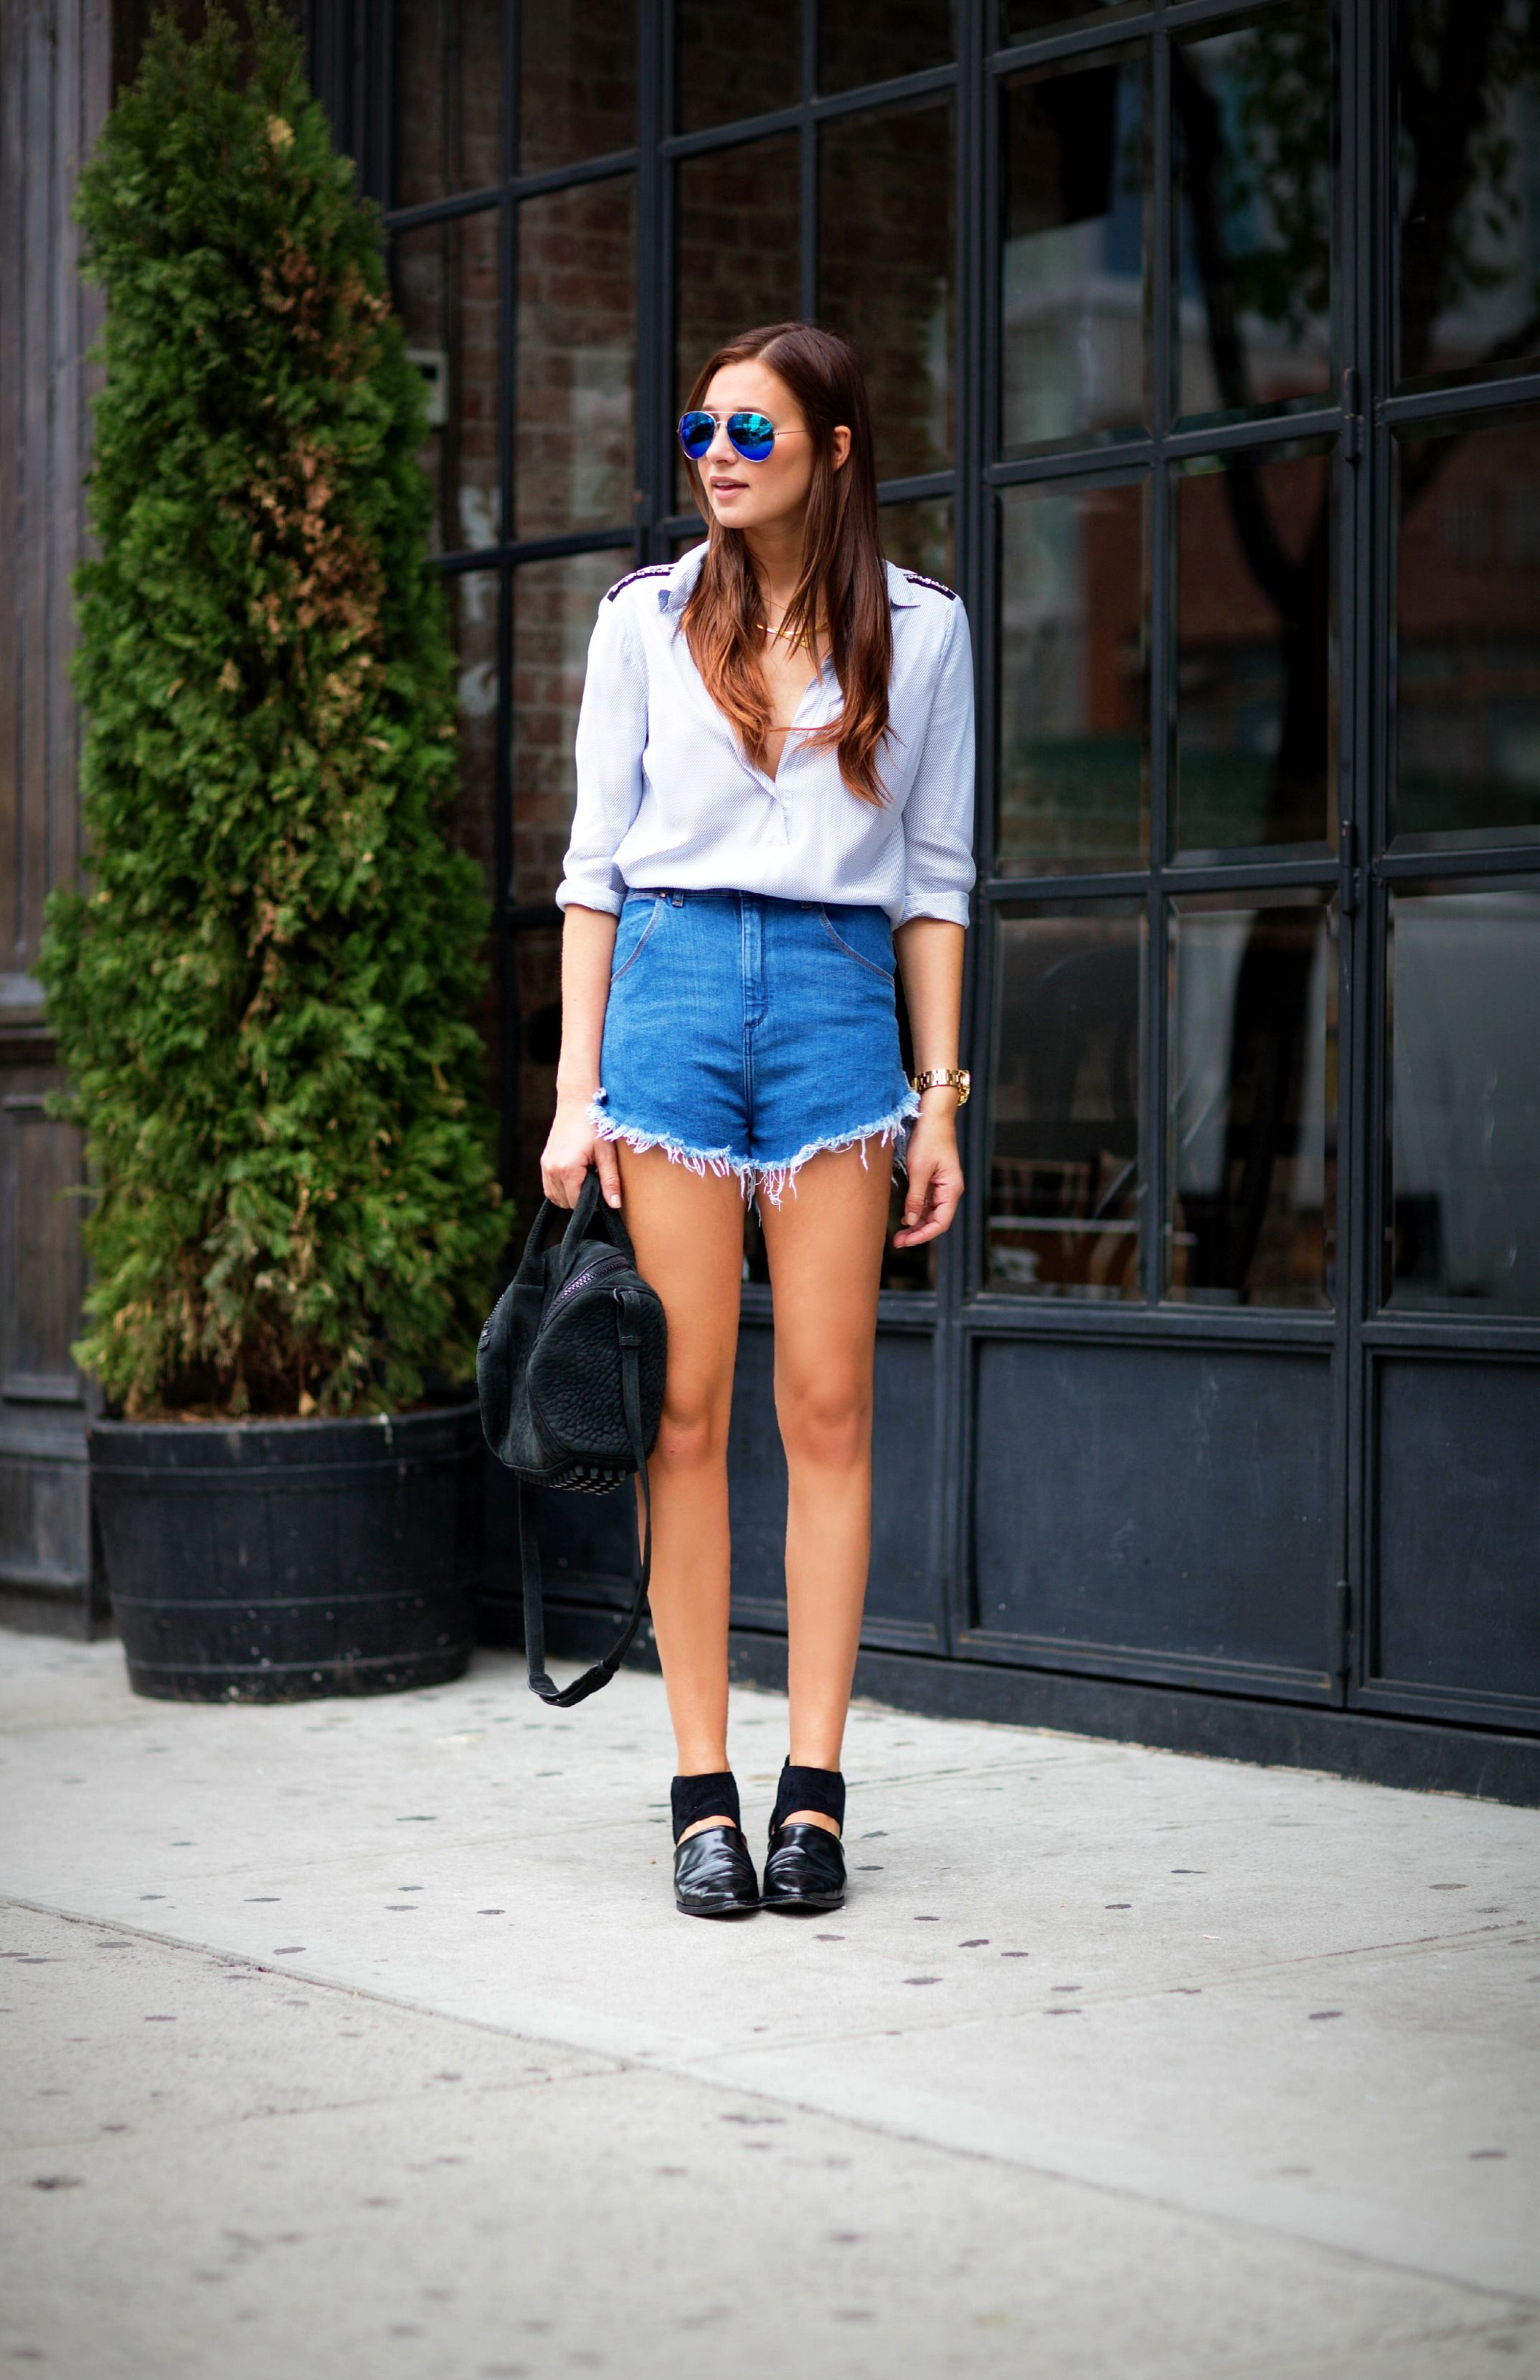 Street fashion: cutoffs